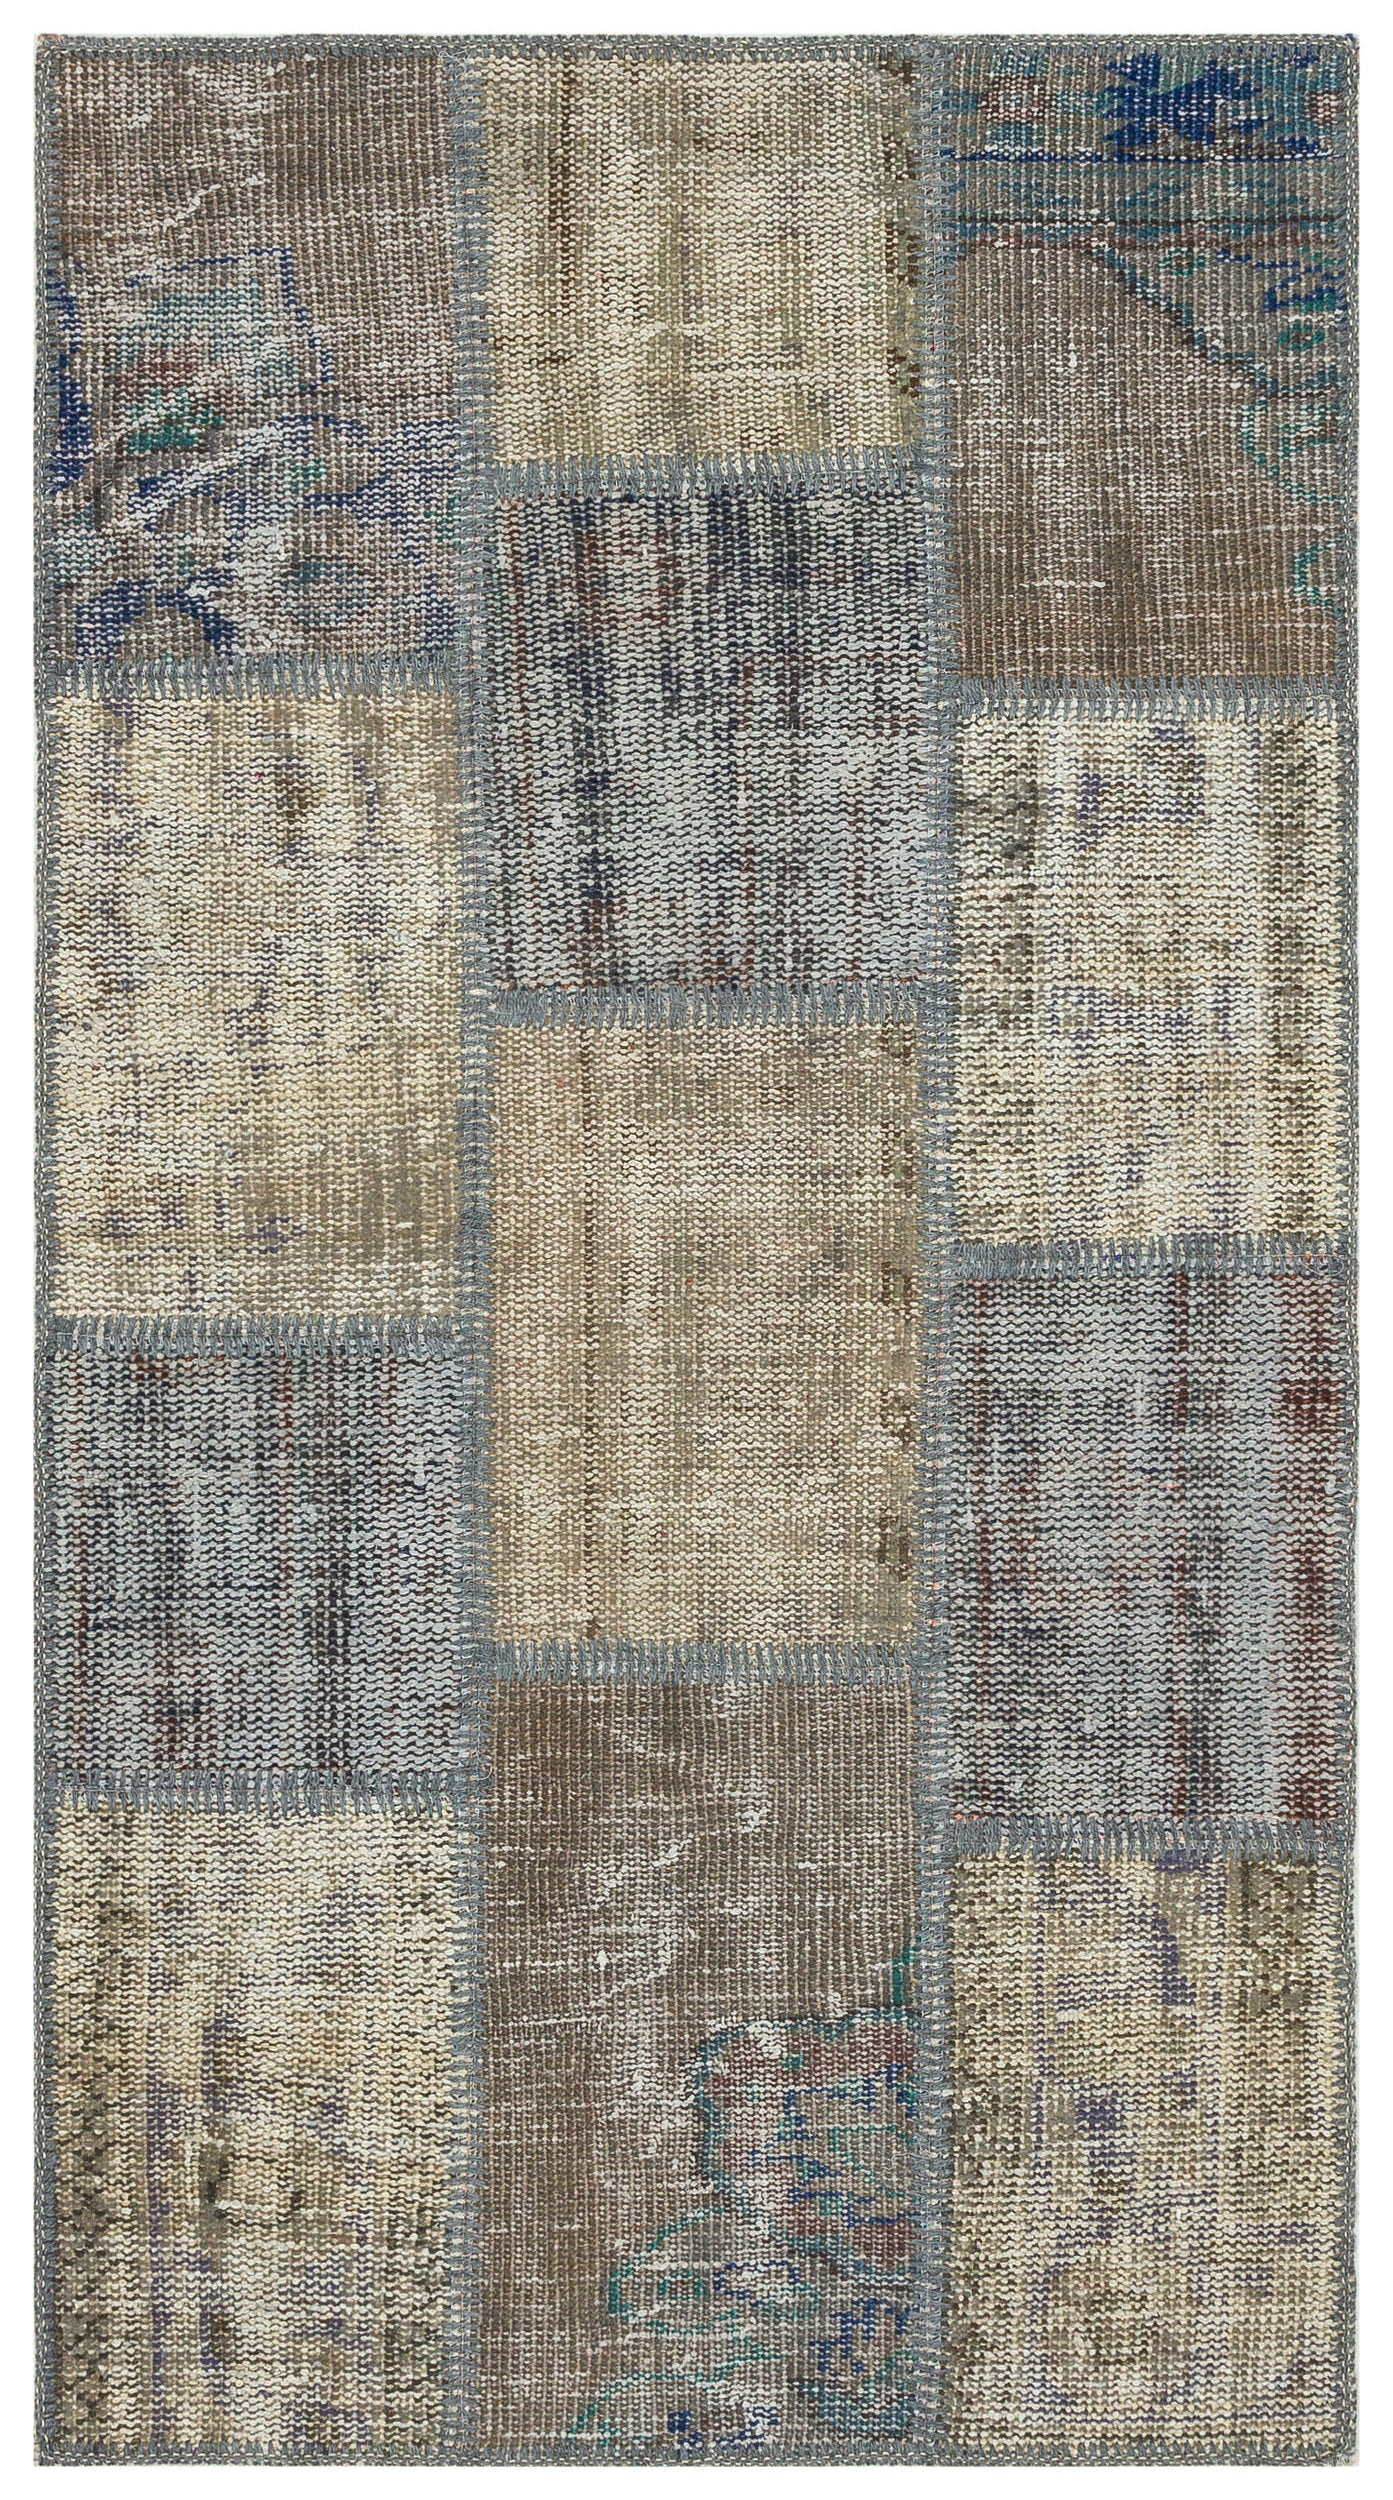 Gray Over Dyed Patchwork Unique Rug 2'8'' x 4'11'' ft 81 x 150 cm